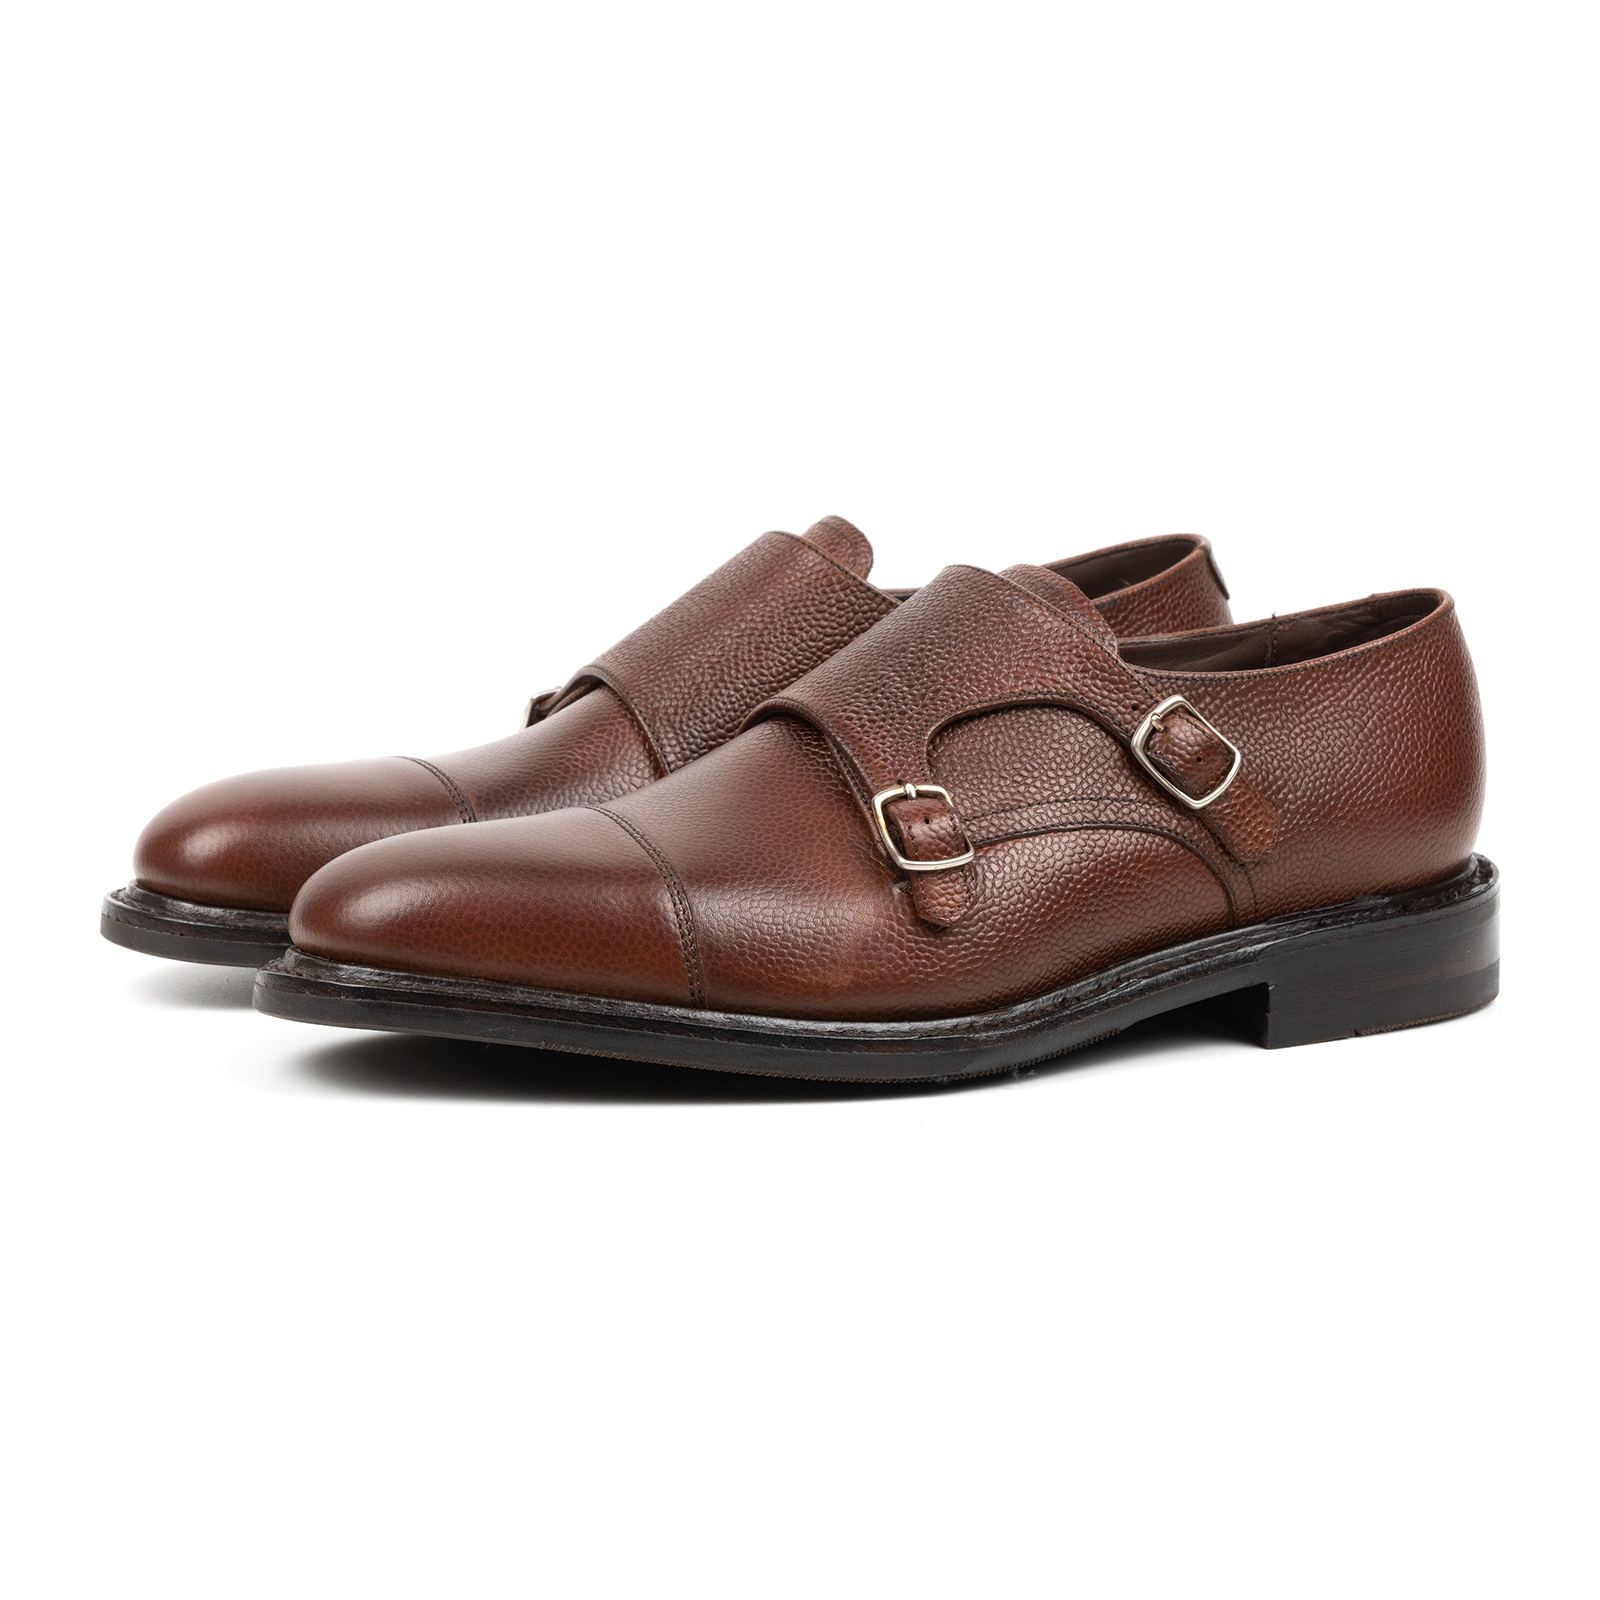 фото Монки Loake, Benedict dark brown от магазина MENSHOES